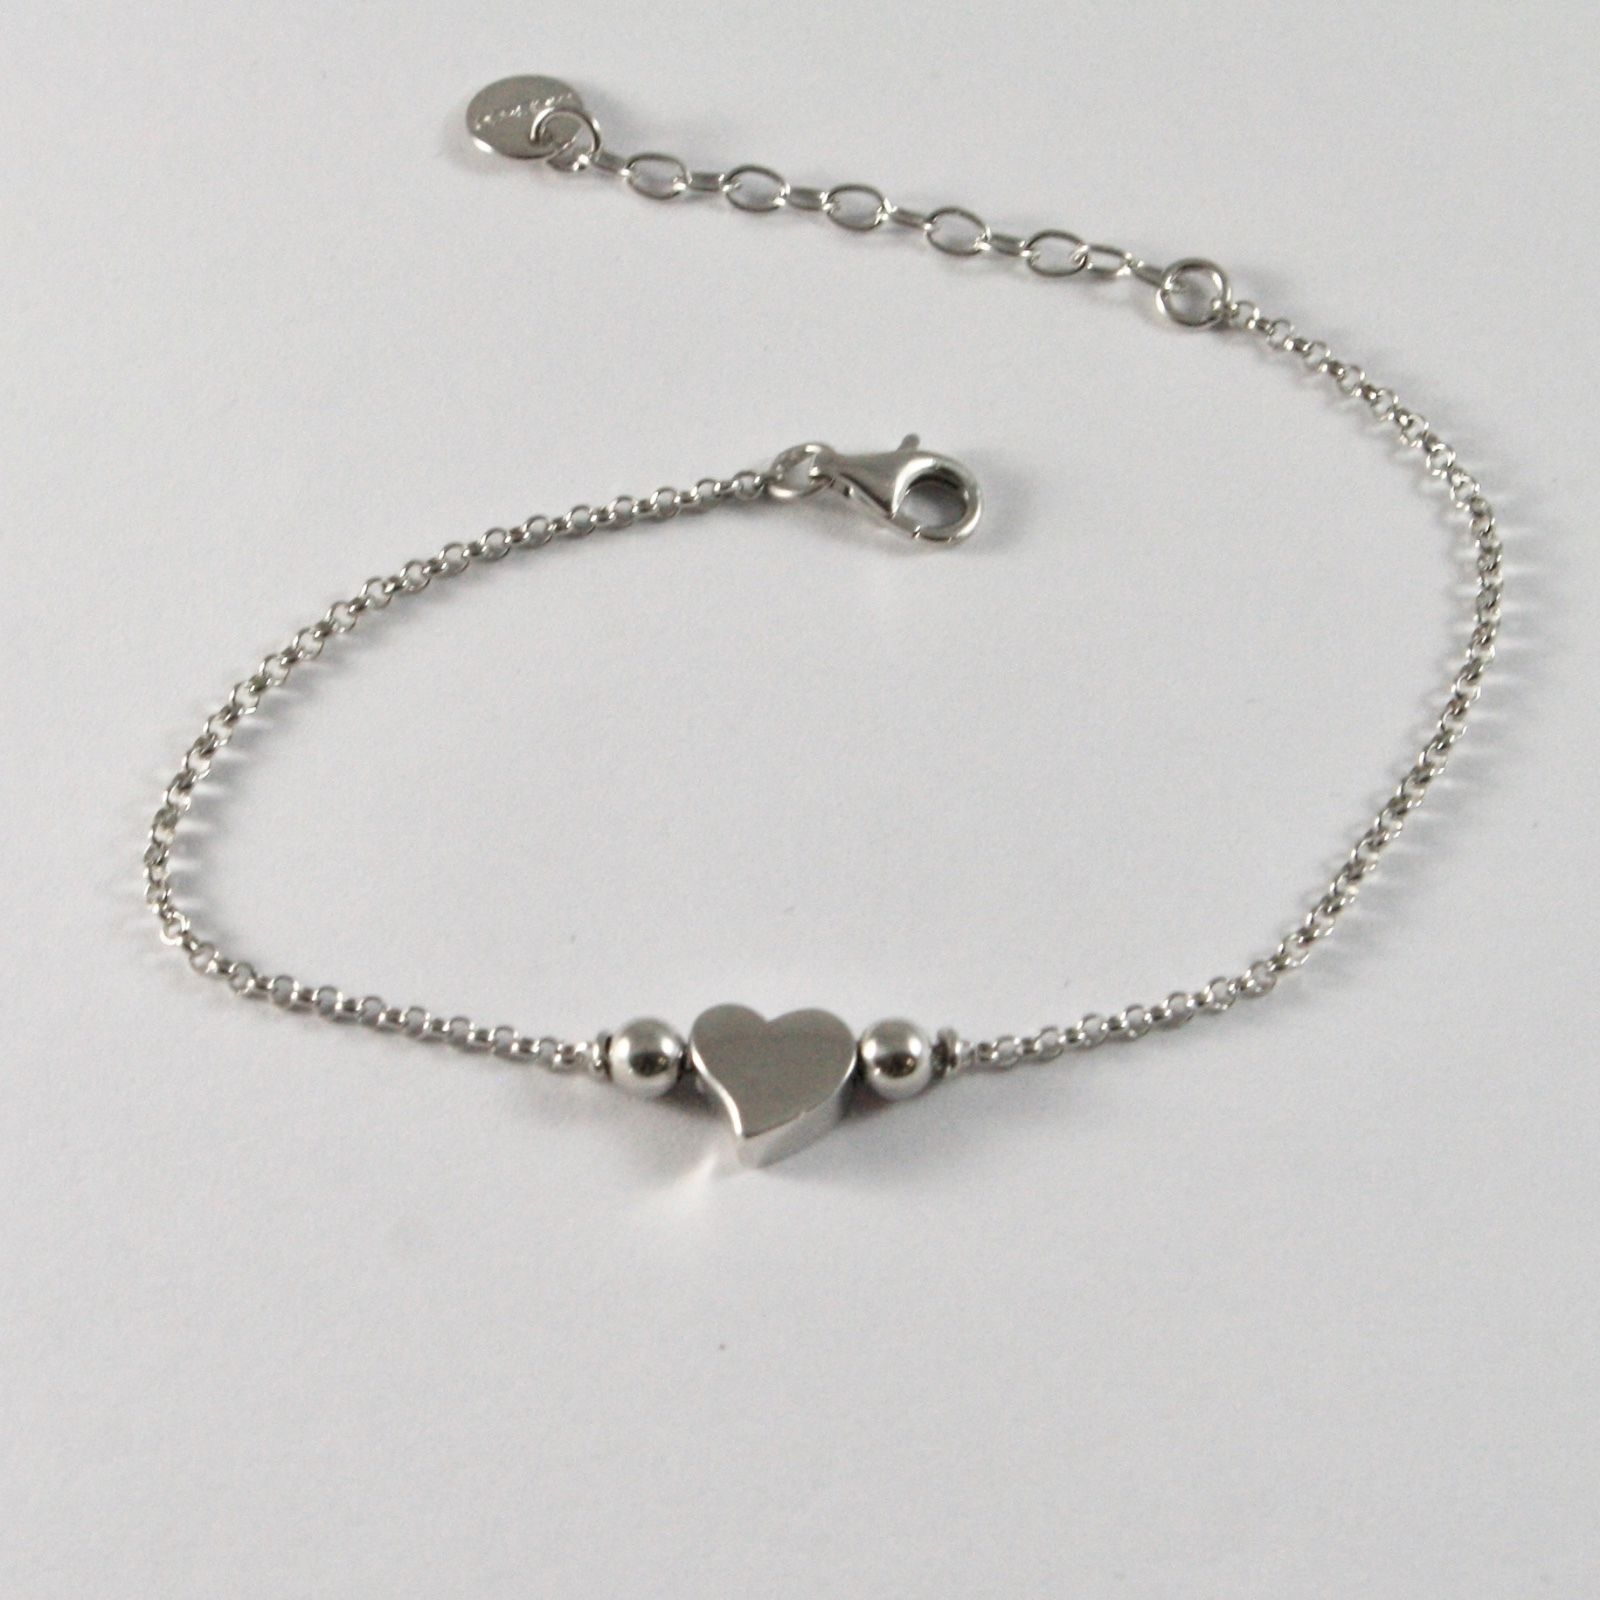 SILVER 925 BRACELET JACK&CO WITH HEART LOVE STYLIZED POLISHED JCB0816